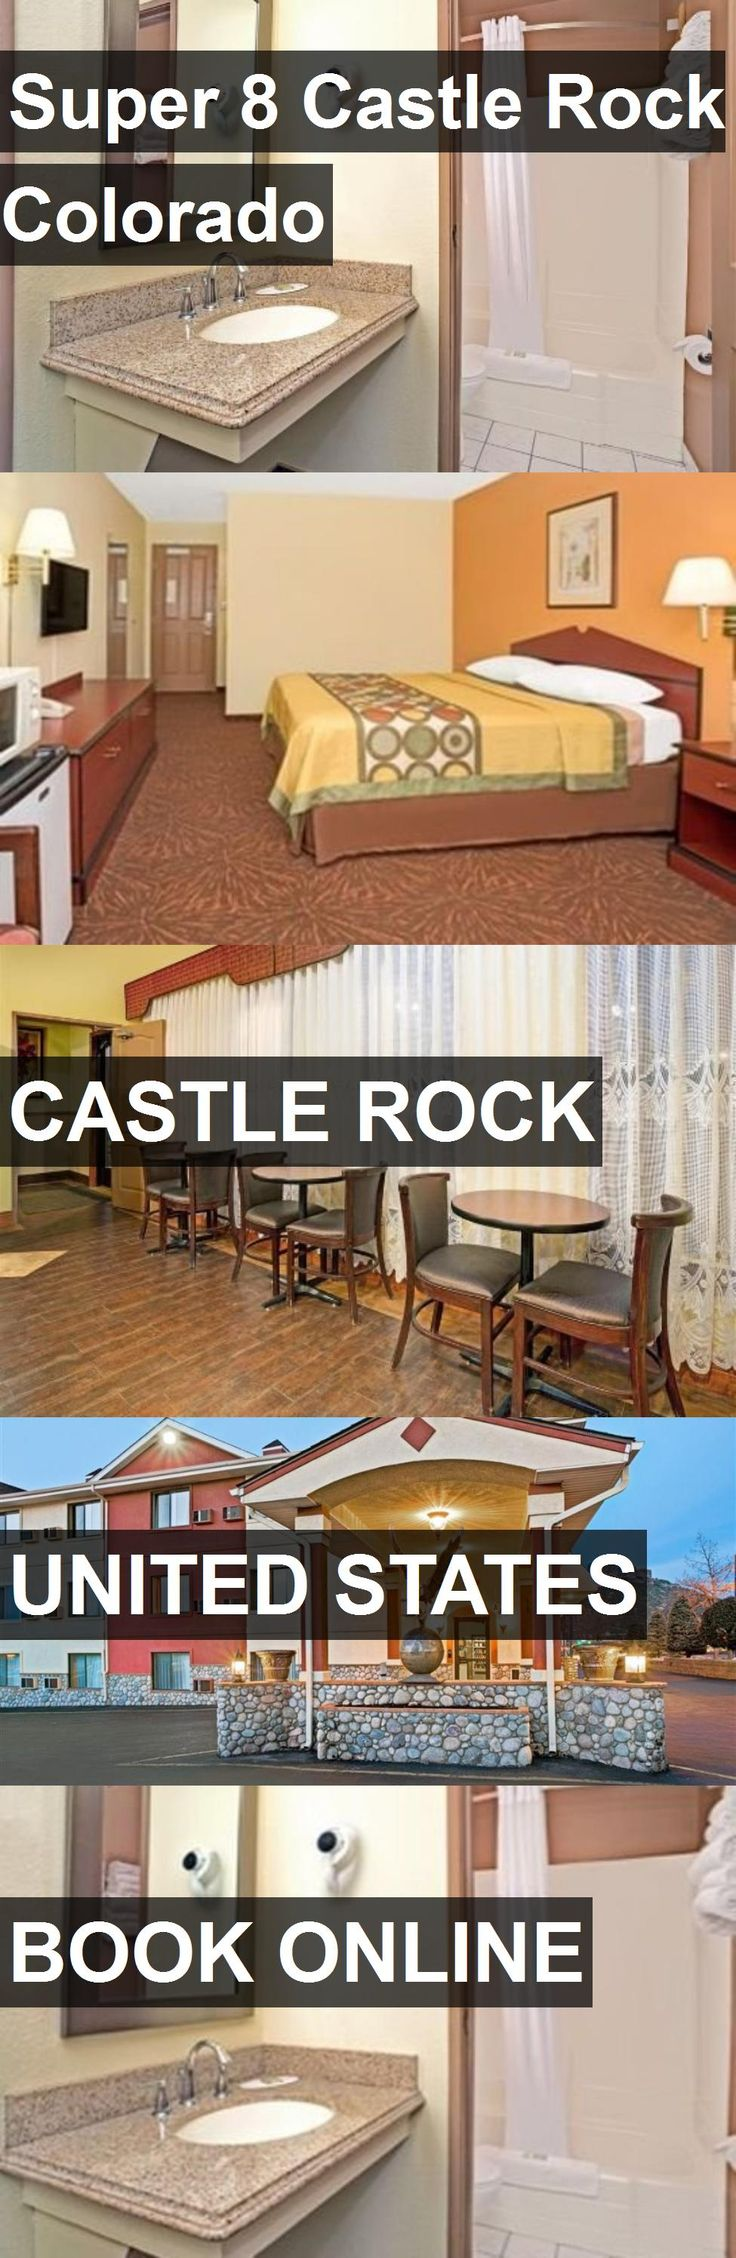 Hotel Super 8 Castle Rock Colorado in Castle Rock, United States. For more information, photos, reviews and best prices please follow the link. #UnitedStates #CastleRock #travel #vacation #hotel